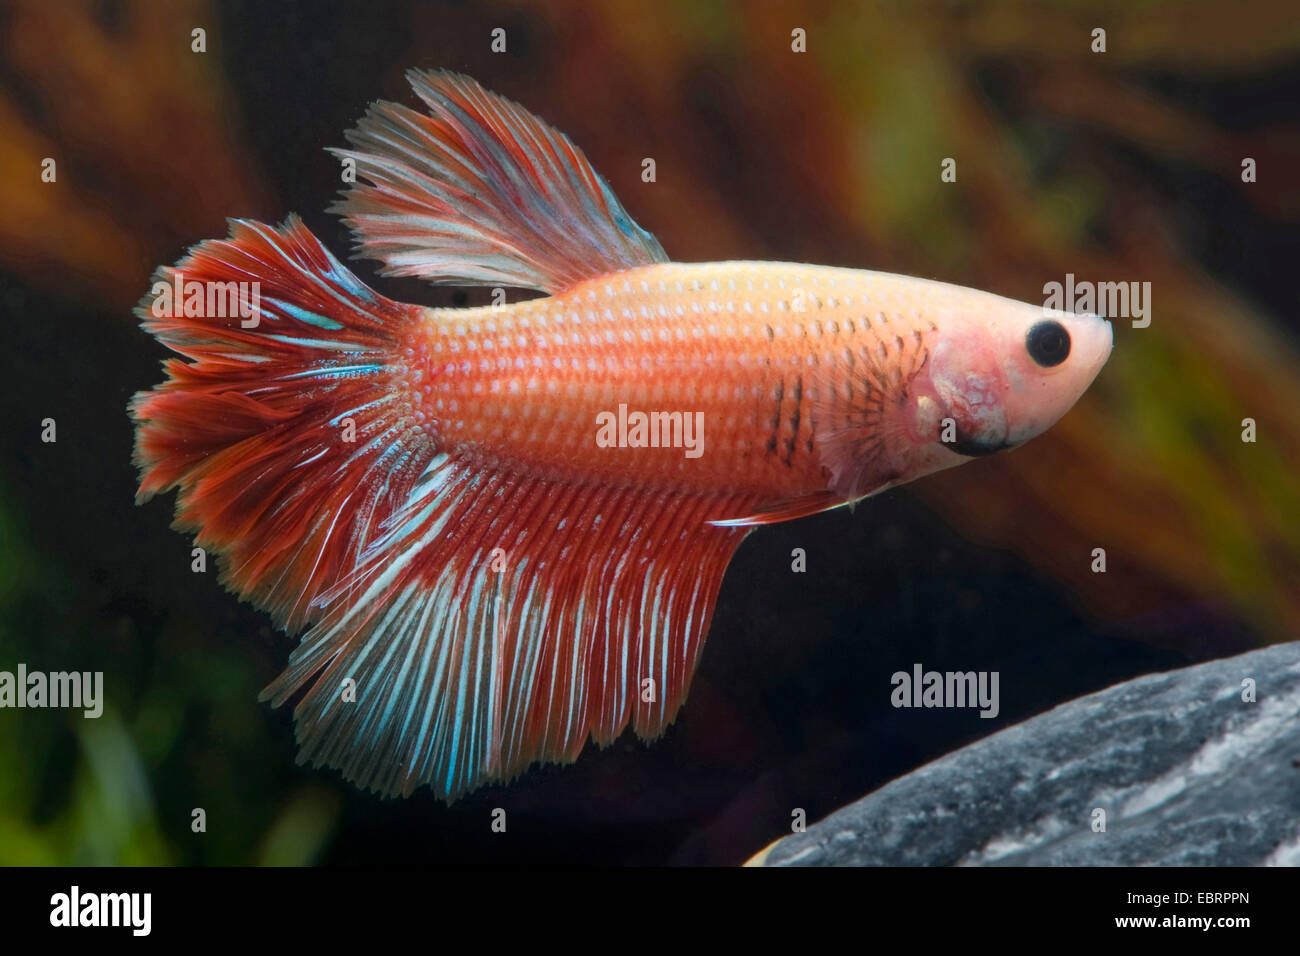 Combats siamois, Siamois poisson Betta Splendens (combattant), race Mirabelle Halfmoon Photo Stock